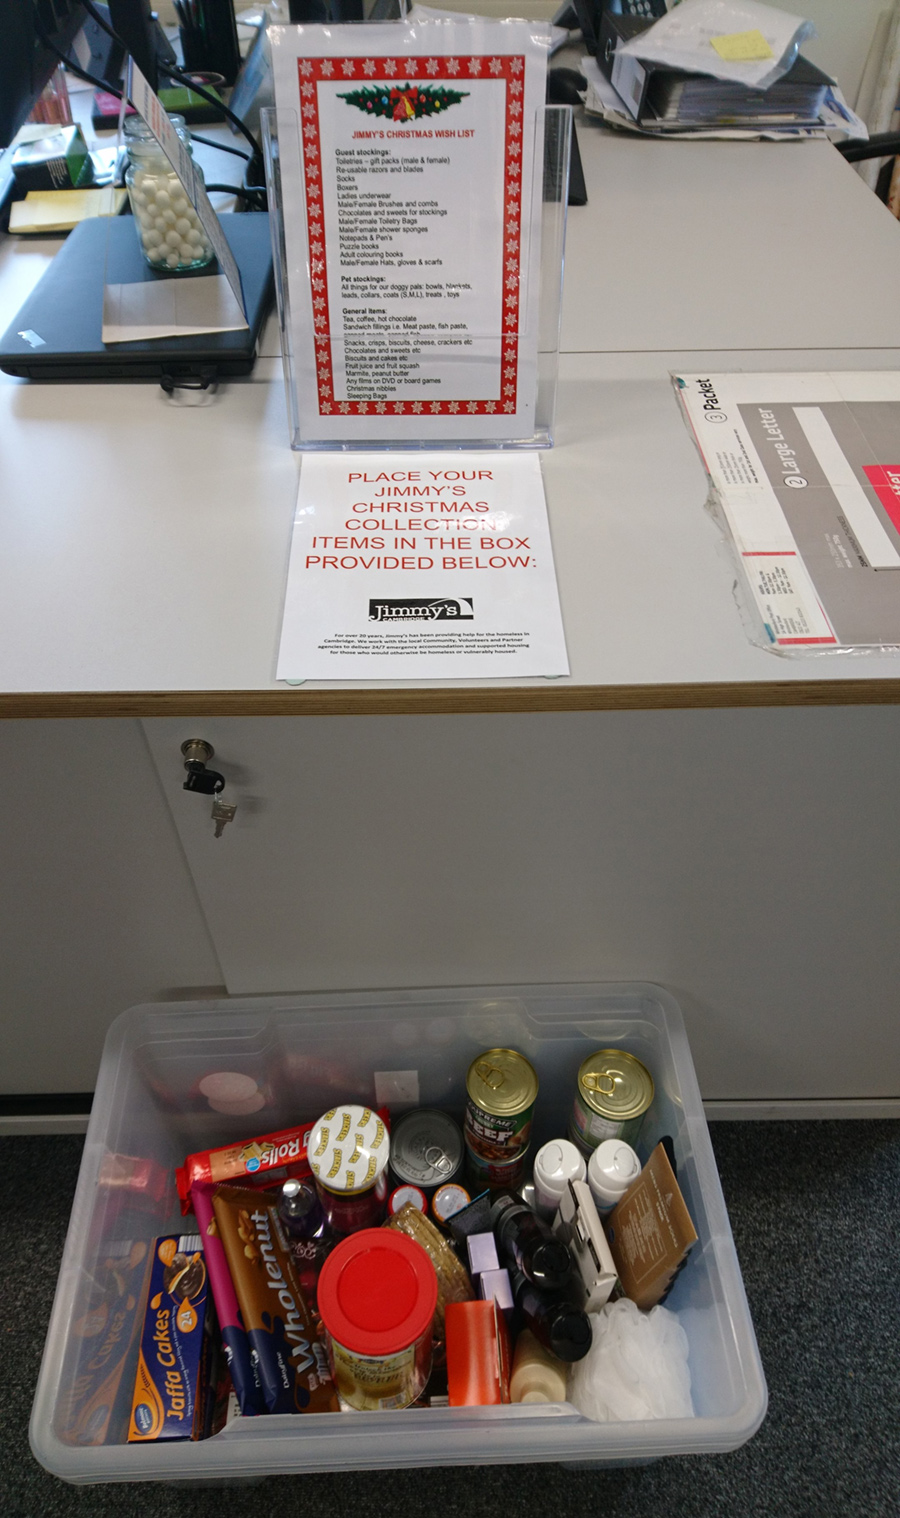 The collection box in an office for the Jimmy's Cambridge charity